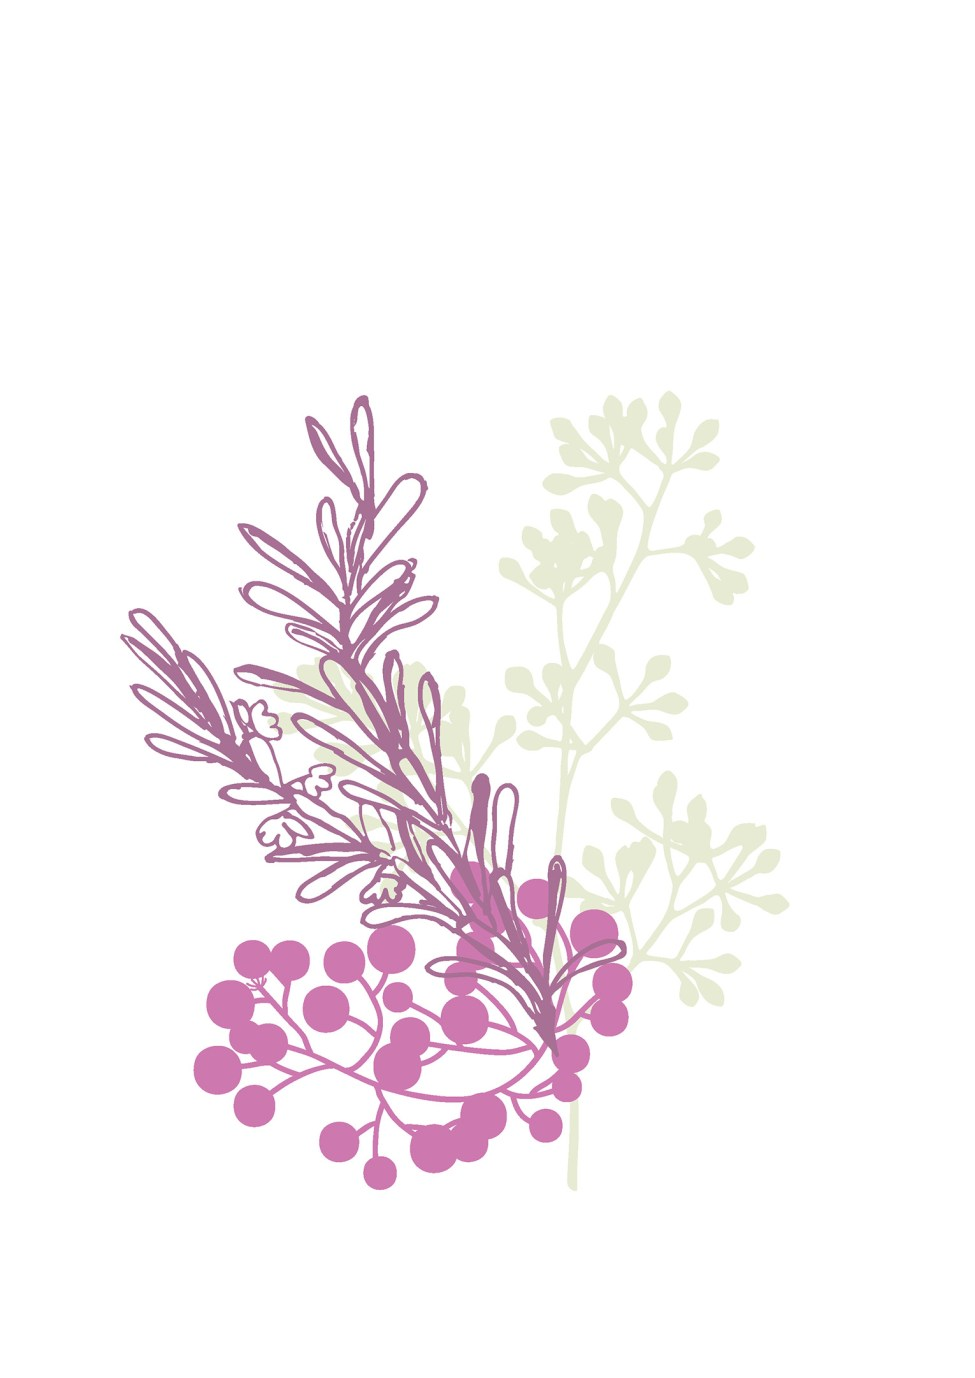 australian-flowers-illustration-04